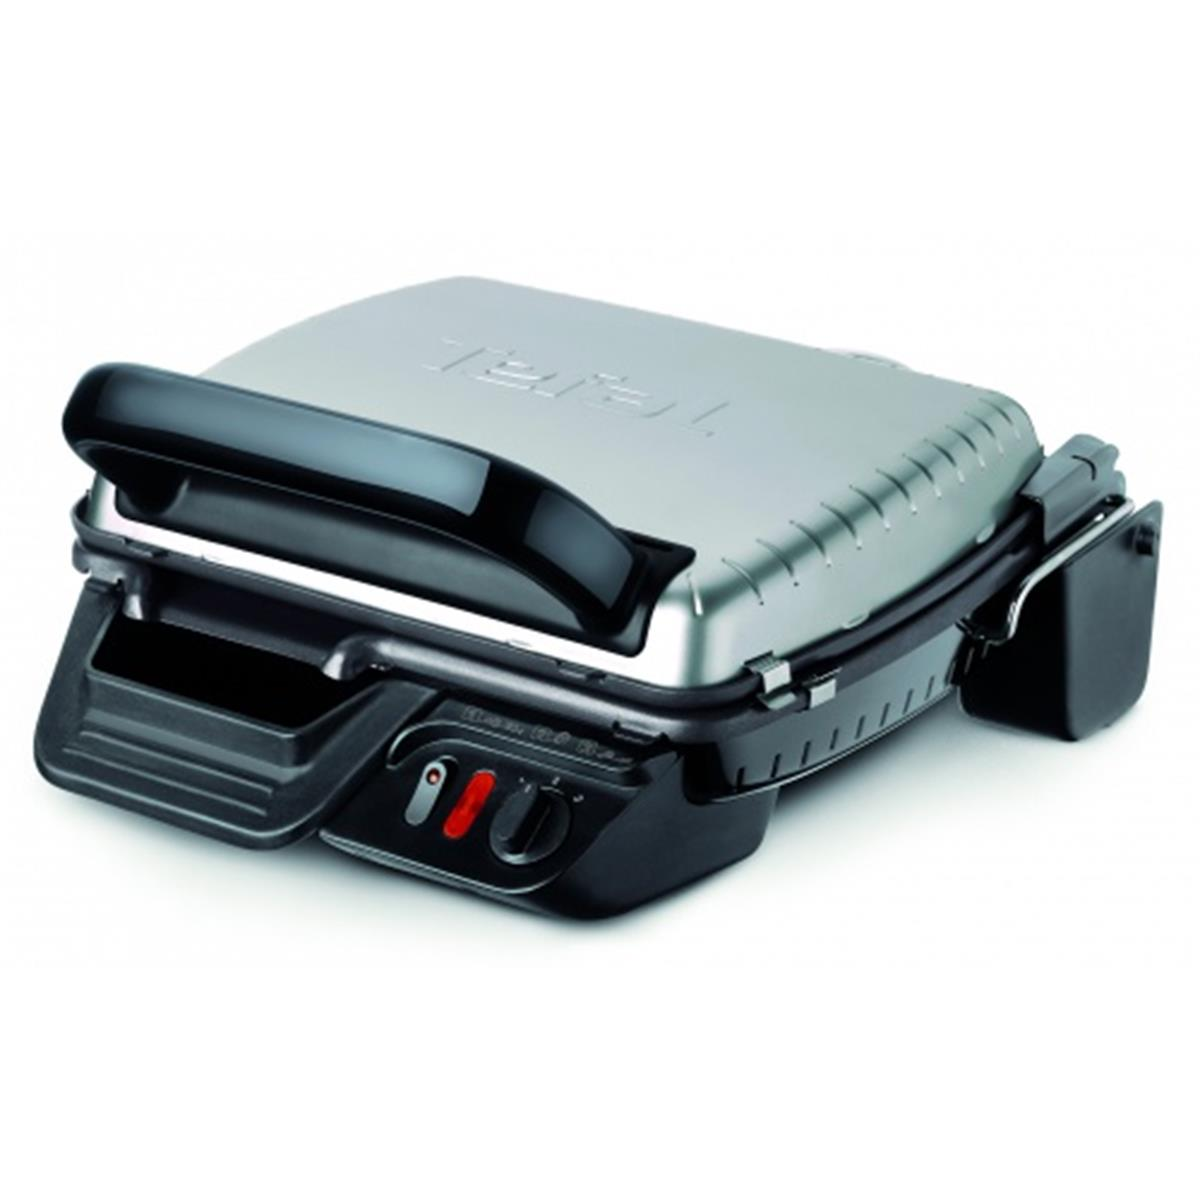 Tefal Gourment Grill Izgara Ve Tost Makinesi